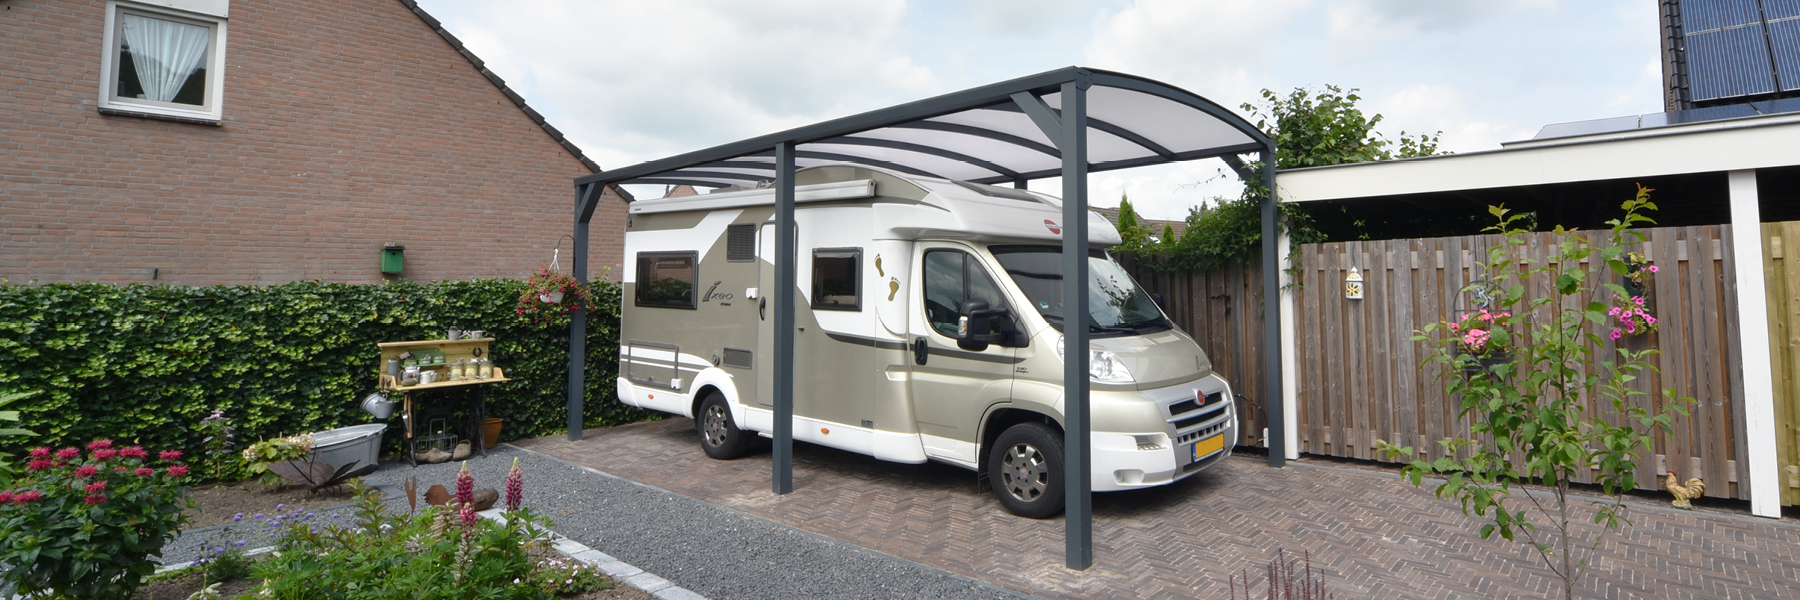 tdm-sliders-carports-gebogen2